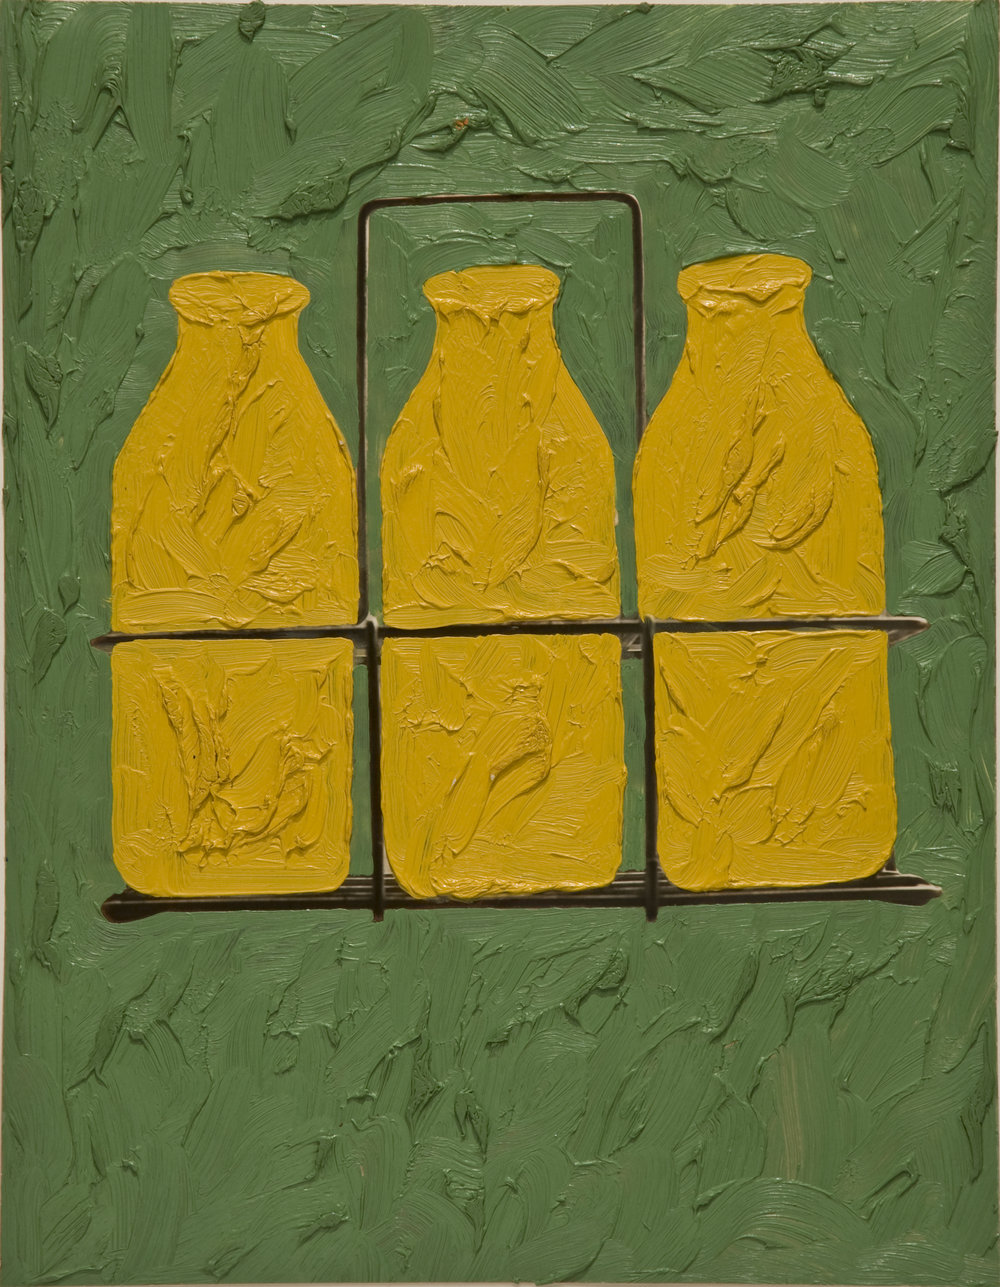 Milk Bottle (painting on photograph), 1961-62, Hirshhorn Museum and Sculpture Garden